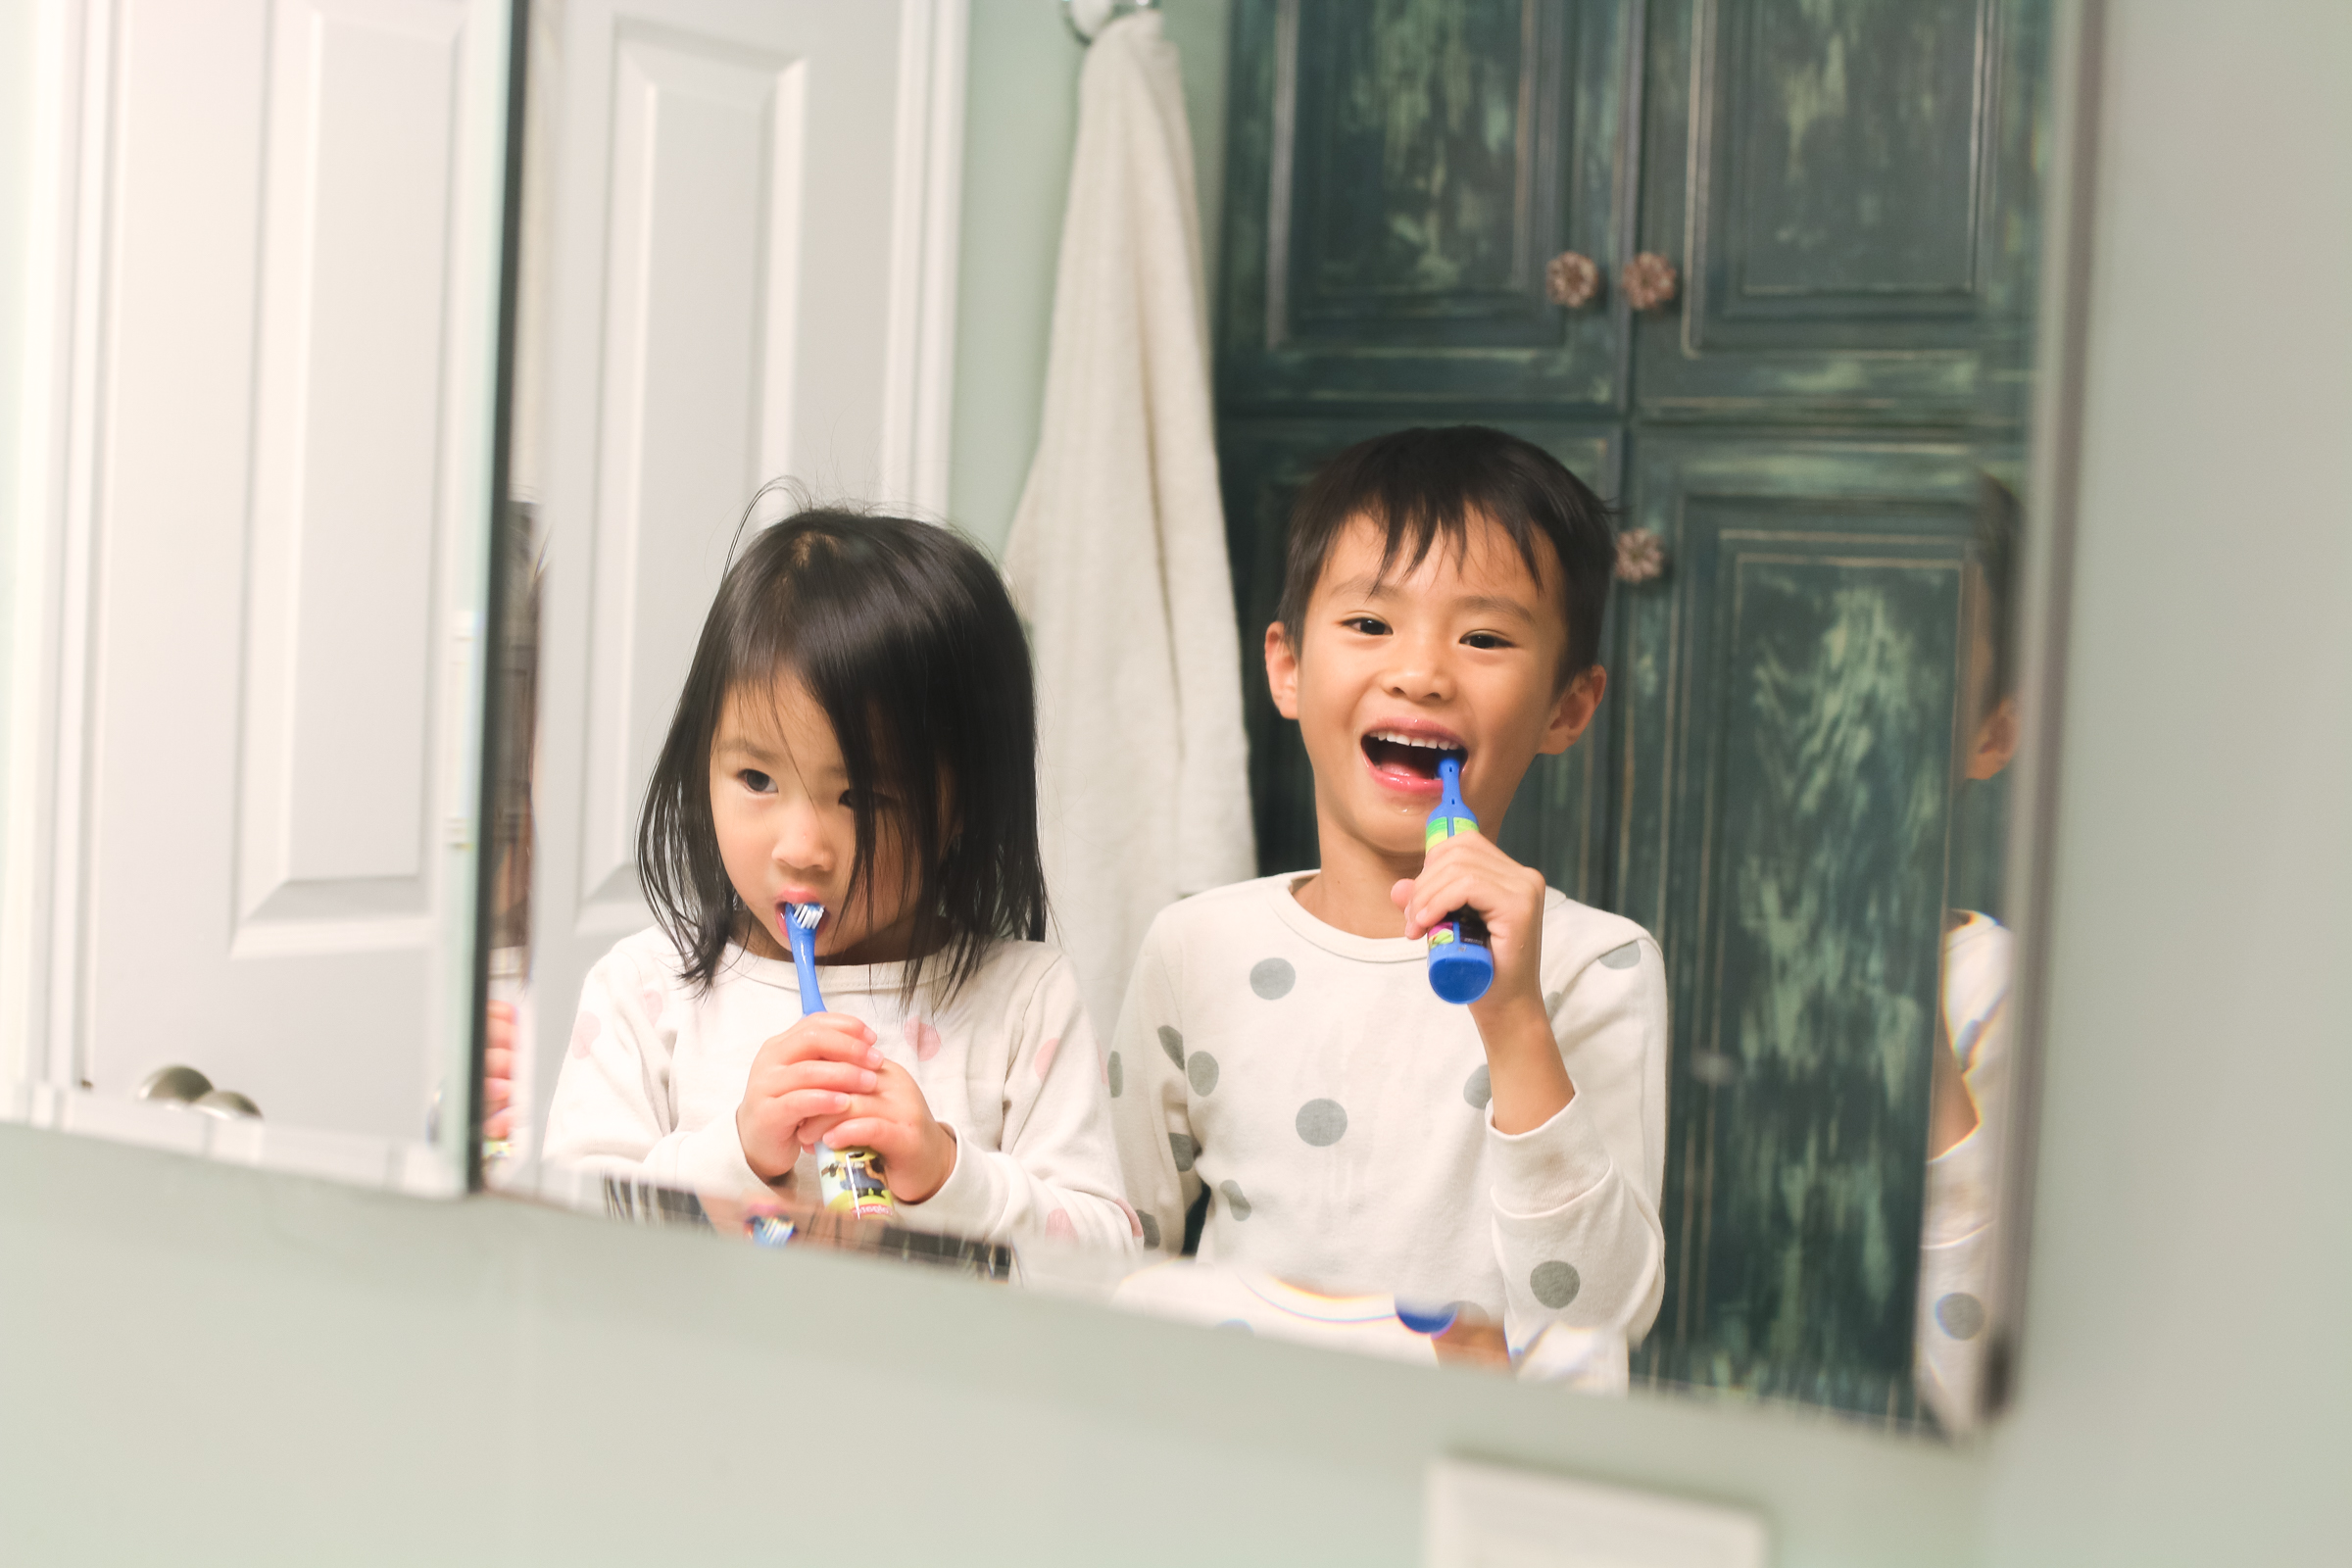 Child Brushing Teeth: How I Got My Kids To Brush Their Teeth For Two Whole Minutes by Utah lifestyle blogger Sandy A La Mode